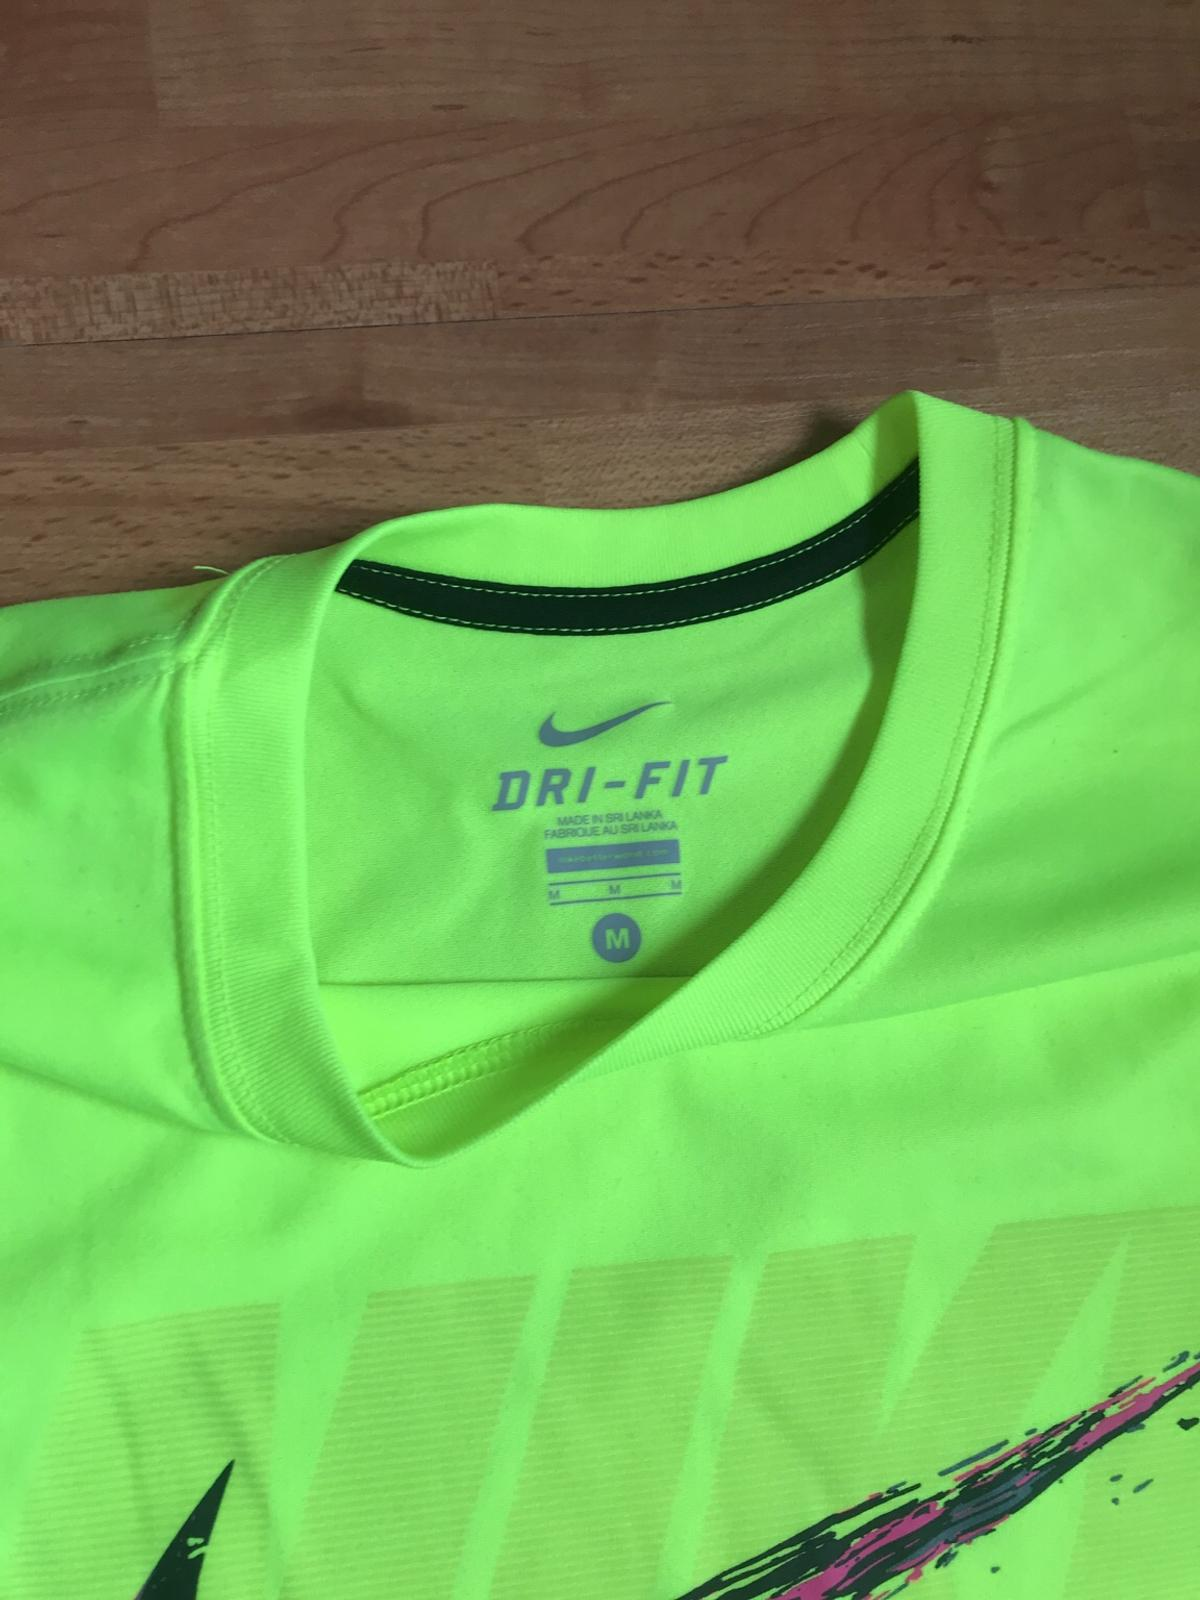 competitive price really cheap sale NIKE Shirt und Hose Outfit - Größe M/L